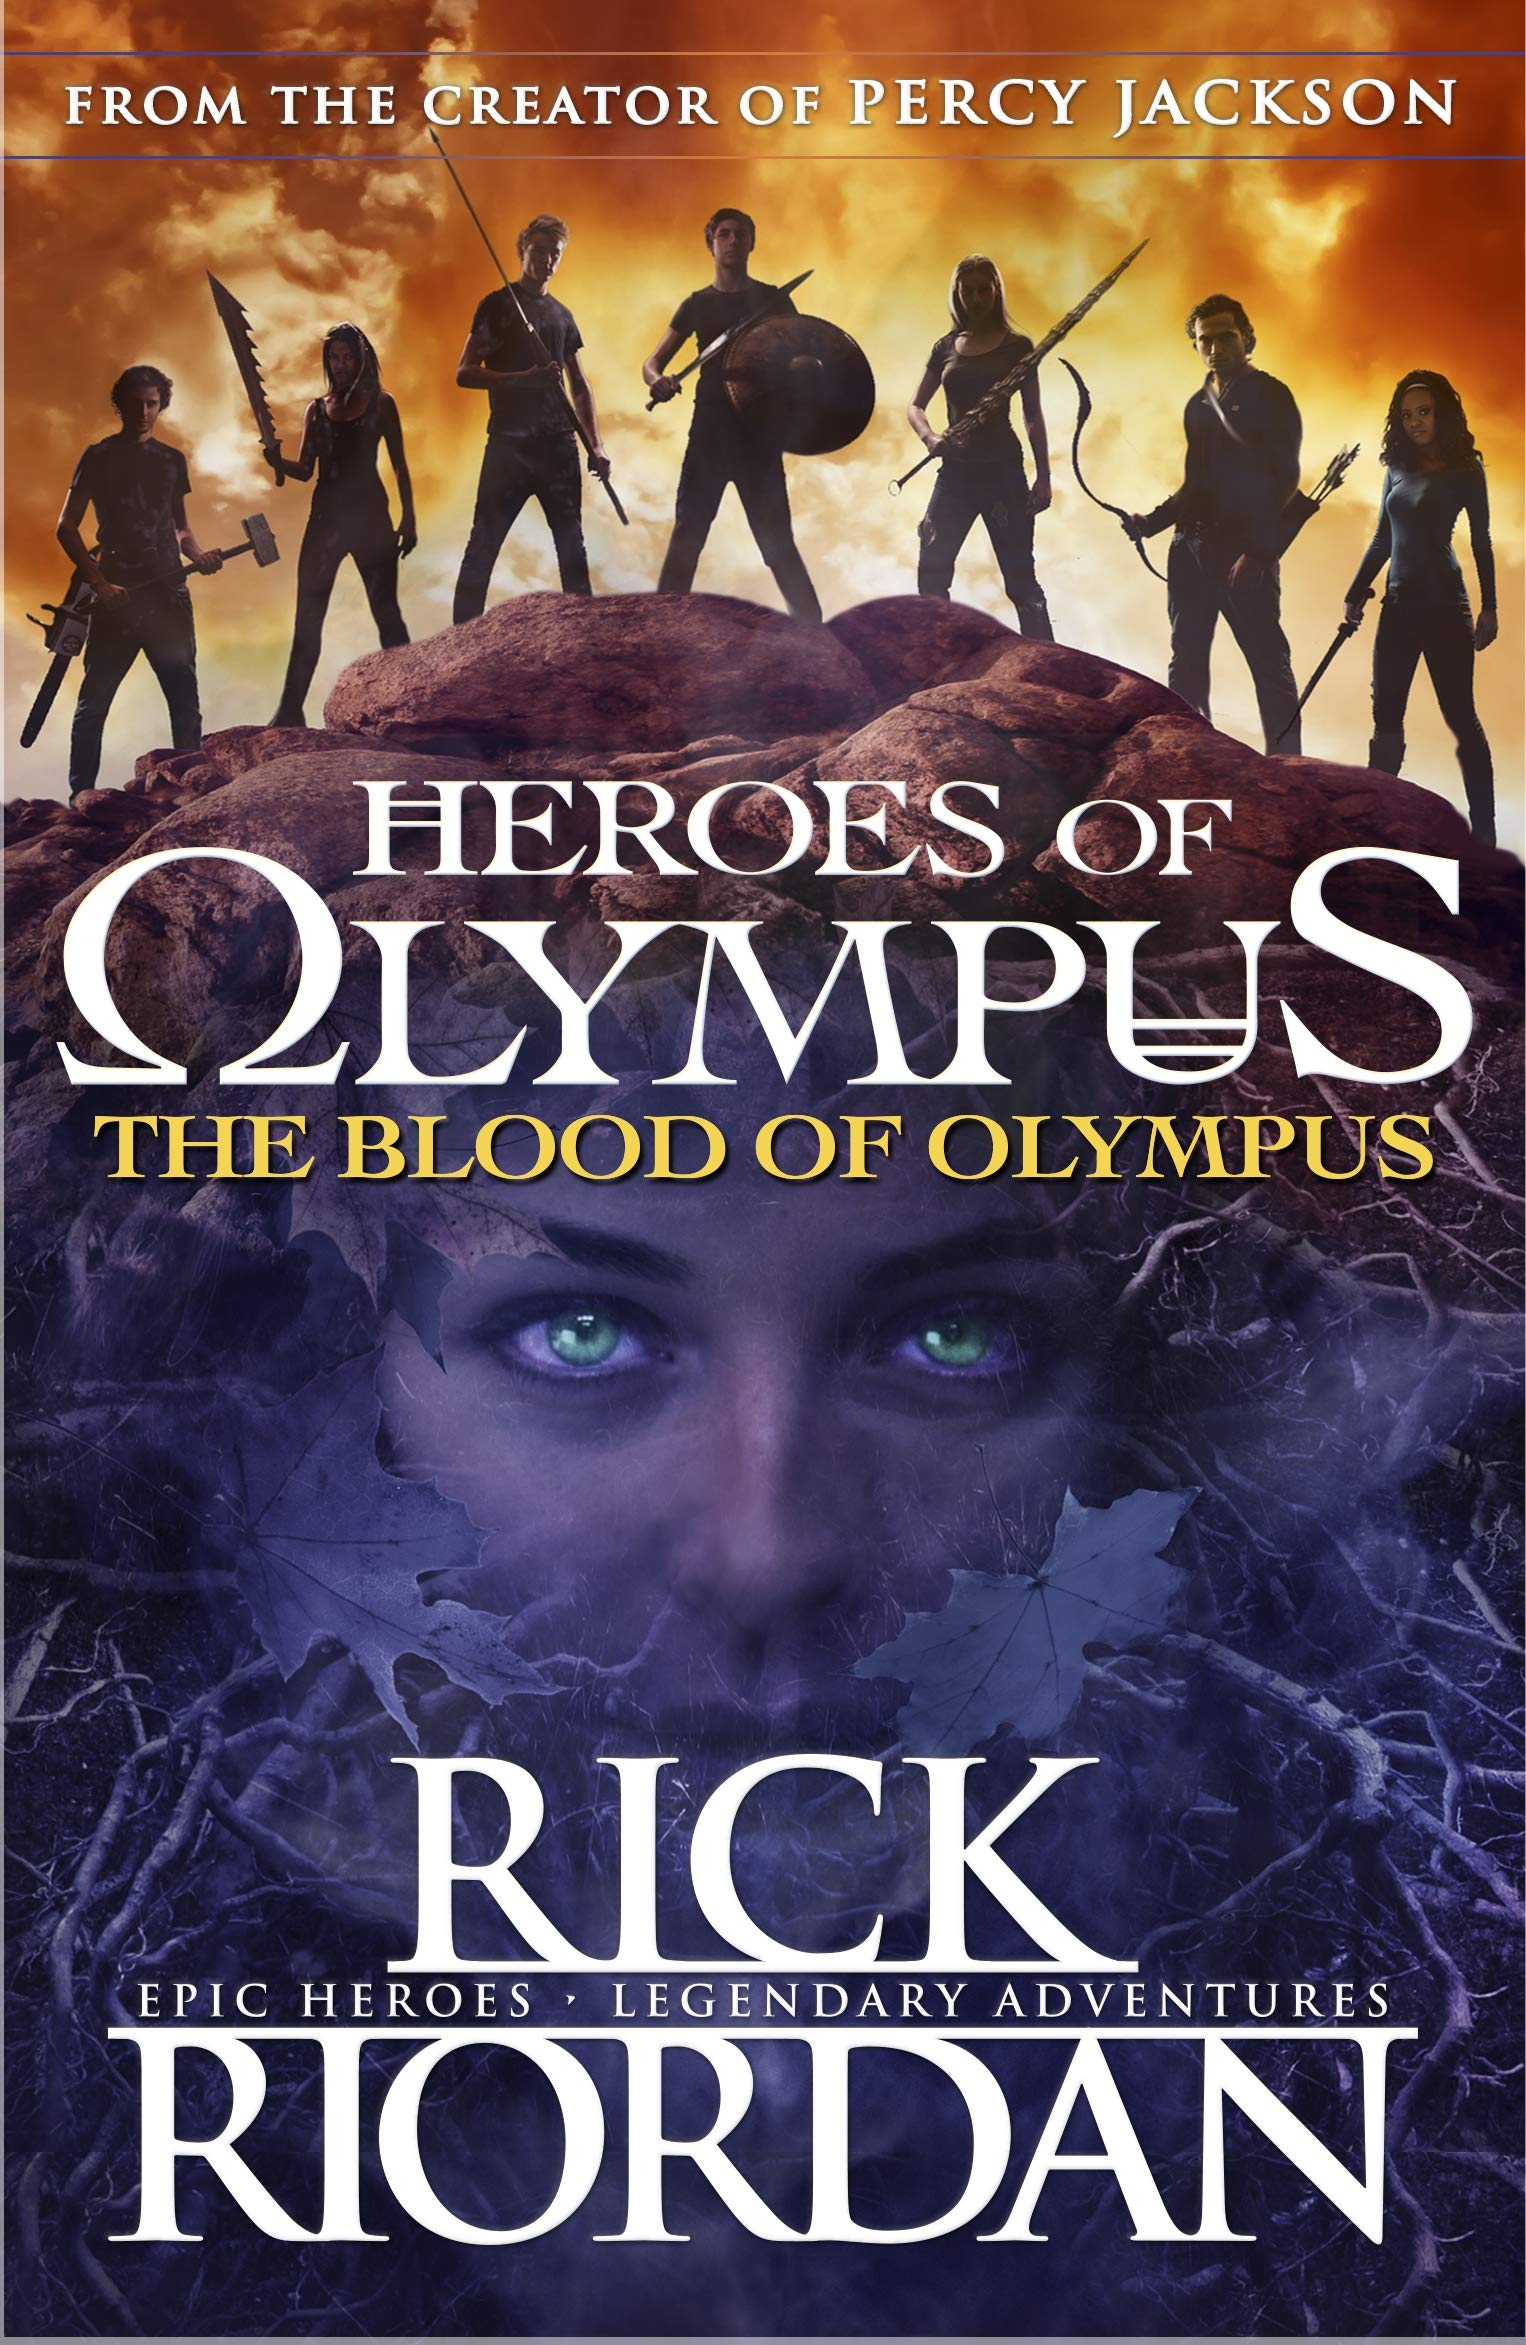 Read Online The Blood of Olympus (Heroes of Olympus Book 5) PDF